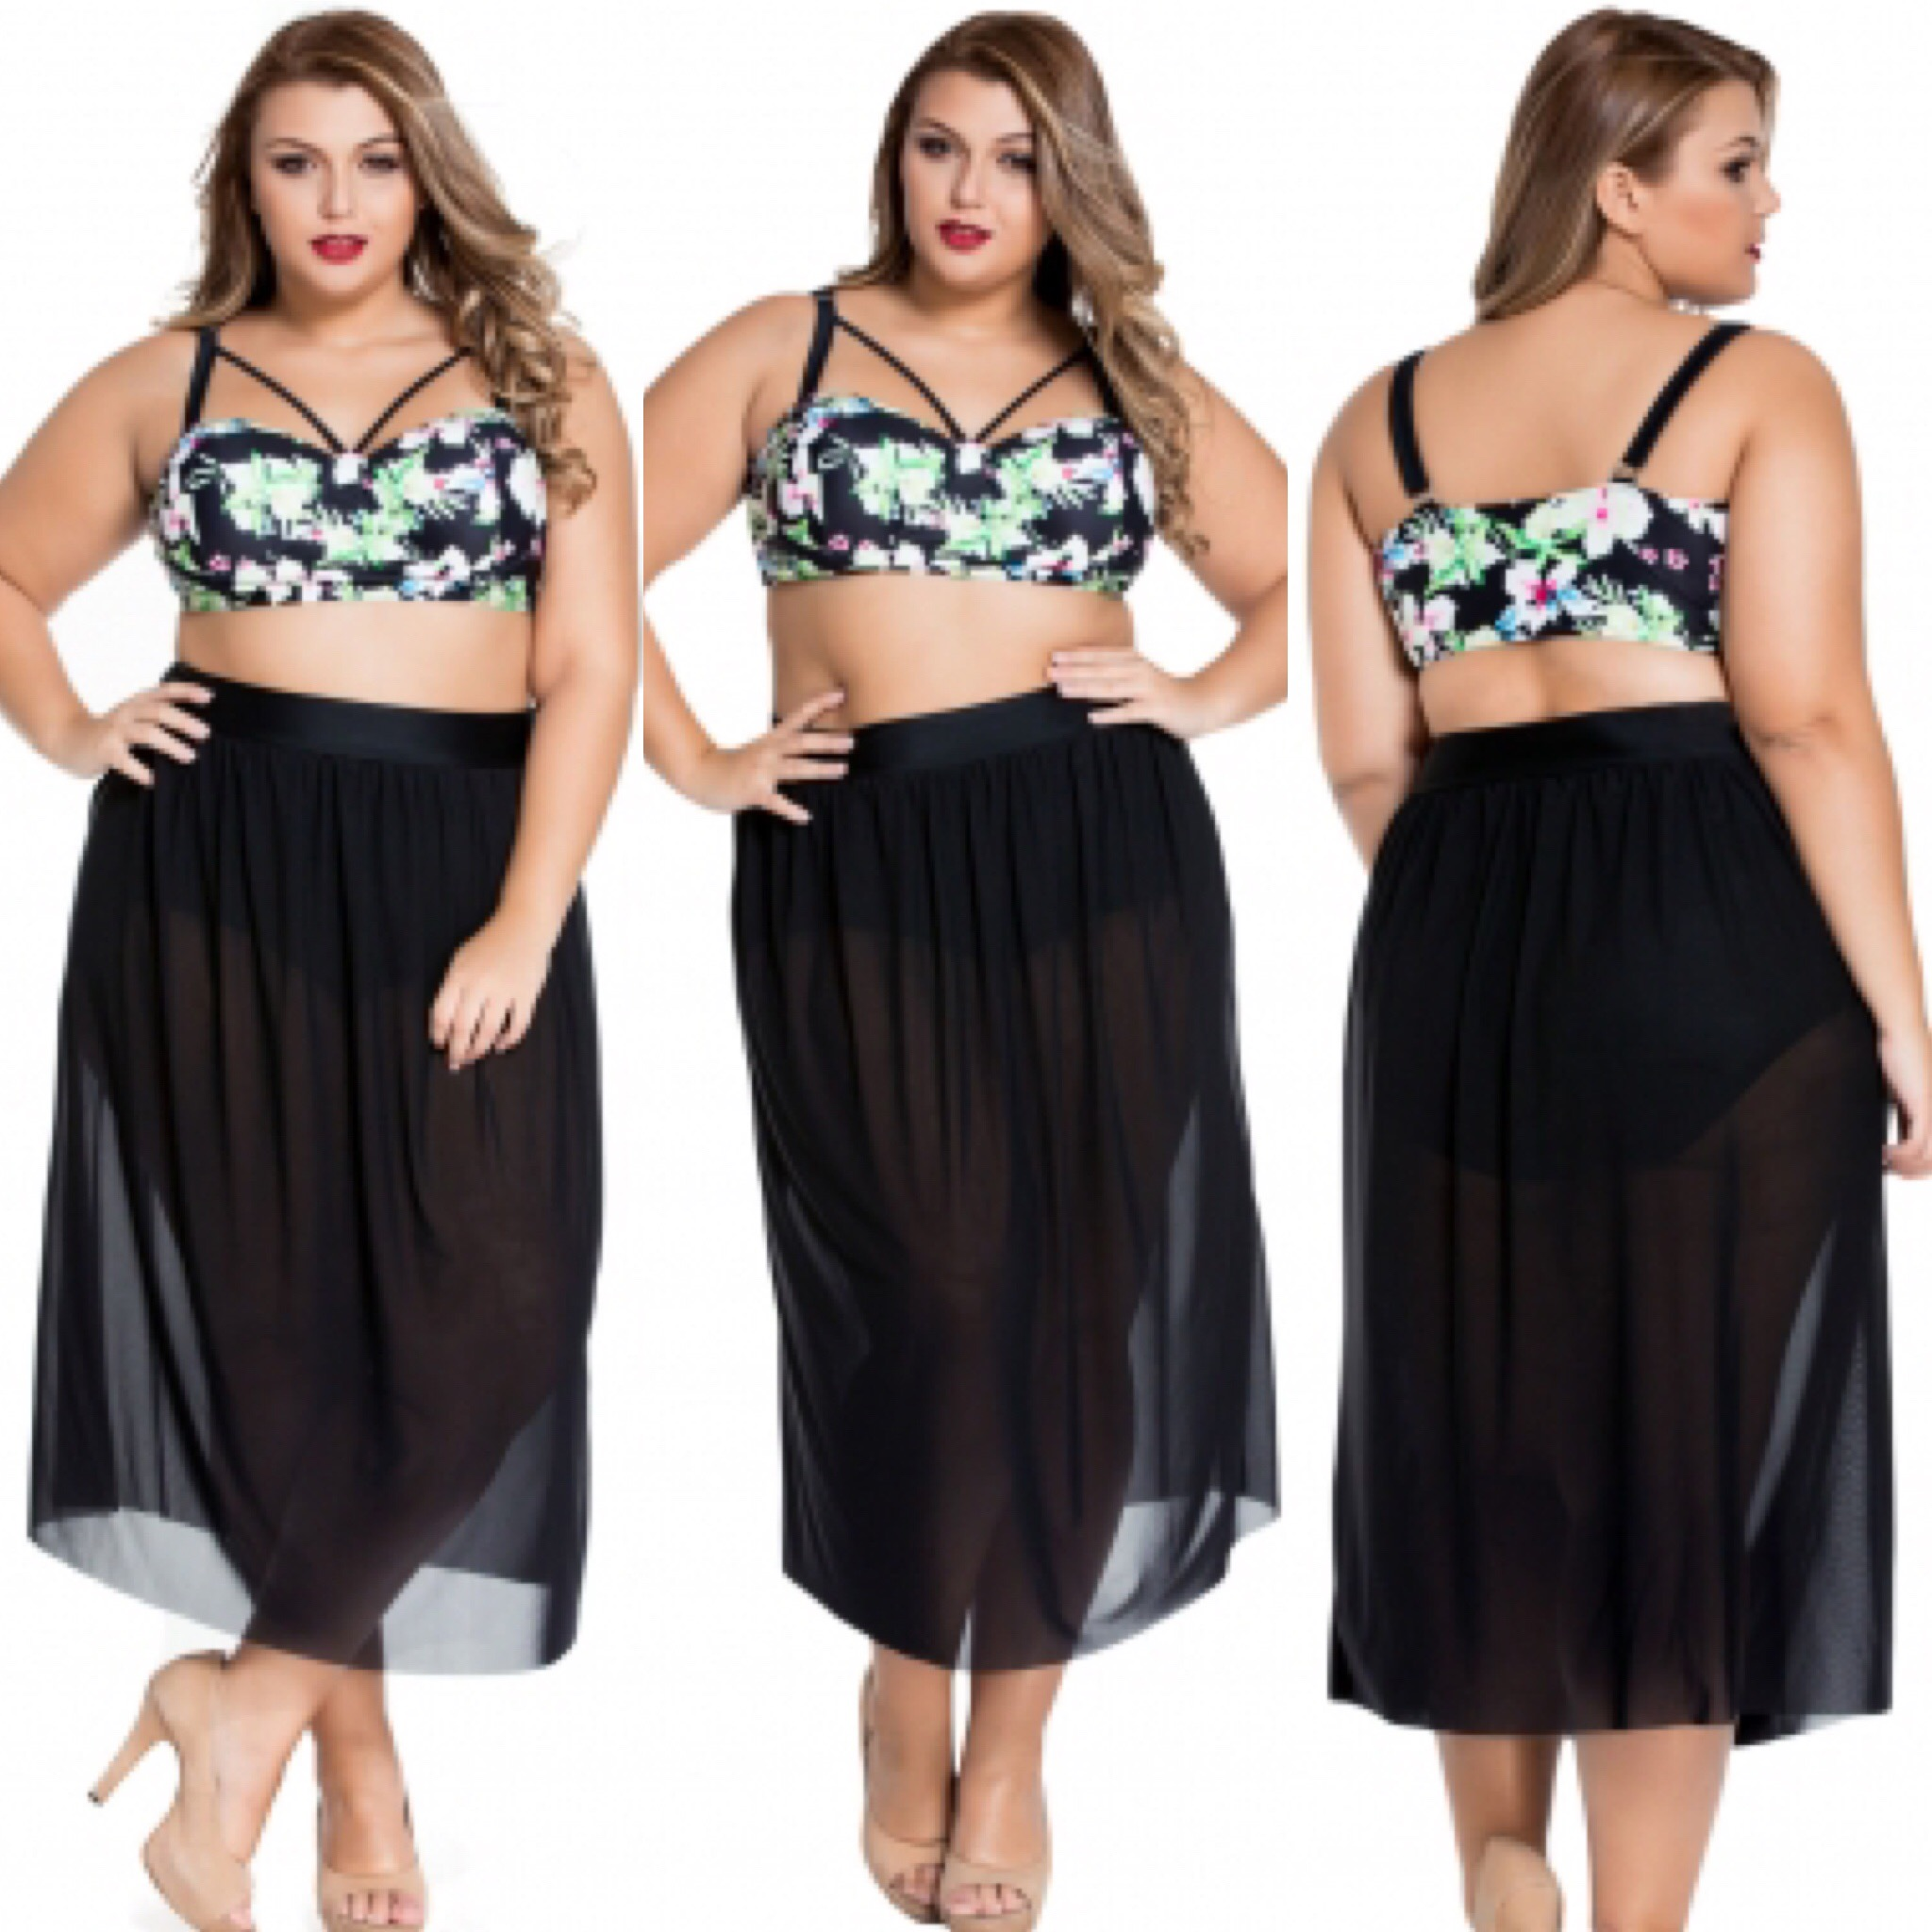 cda12cbb970 Plus Size Swim Suit With Cover Up Skirt on Storenvy